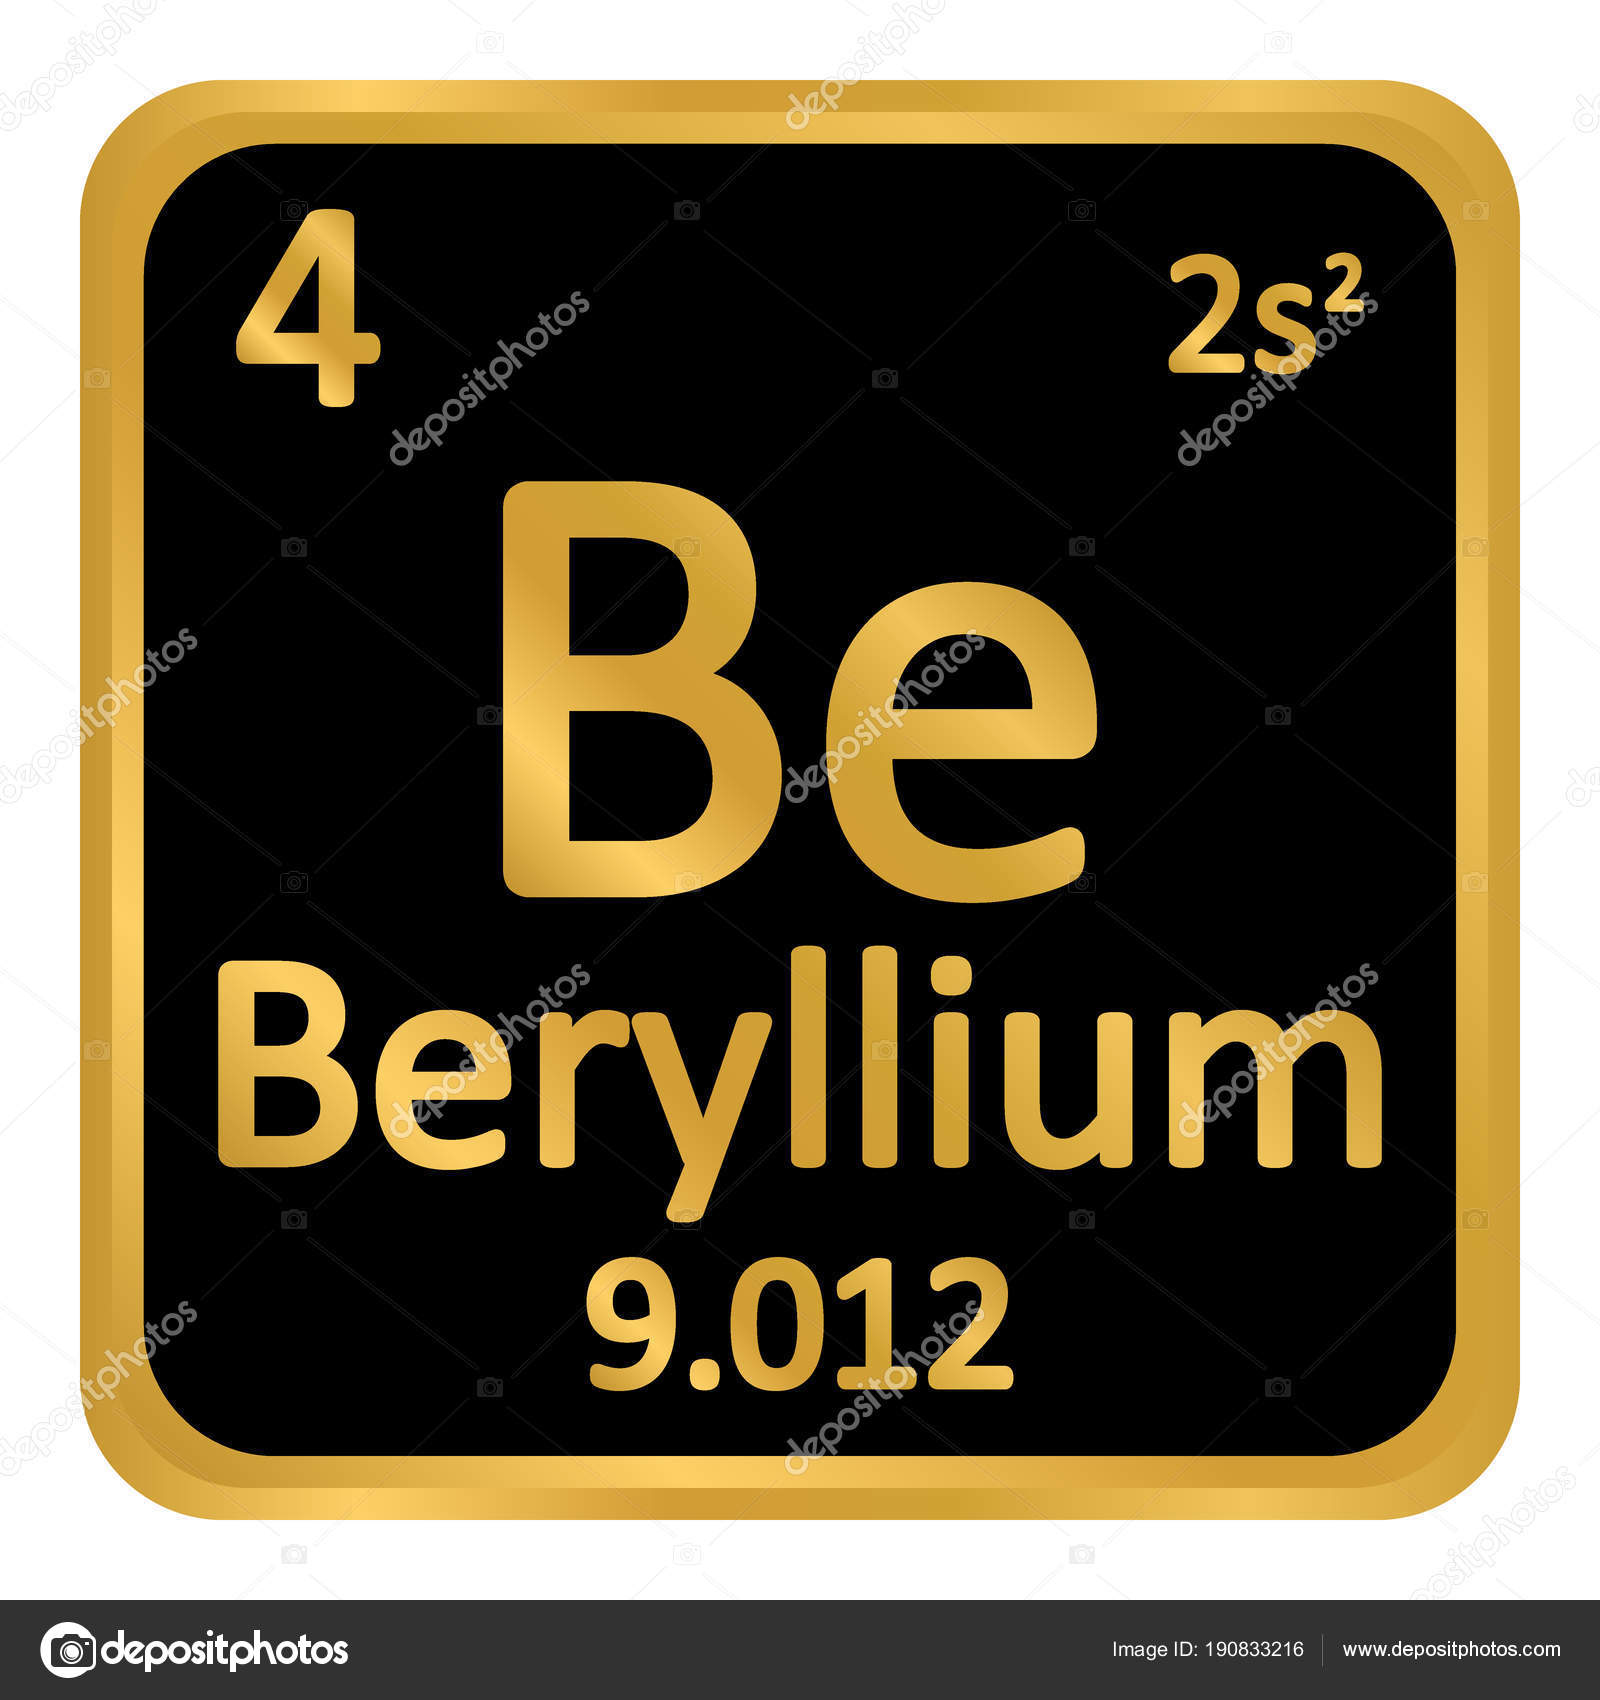 Periodic table element beryllium icon stock vector konstsem periodic table element beryllium icon stock vector urtaz Choice Image